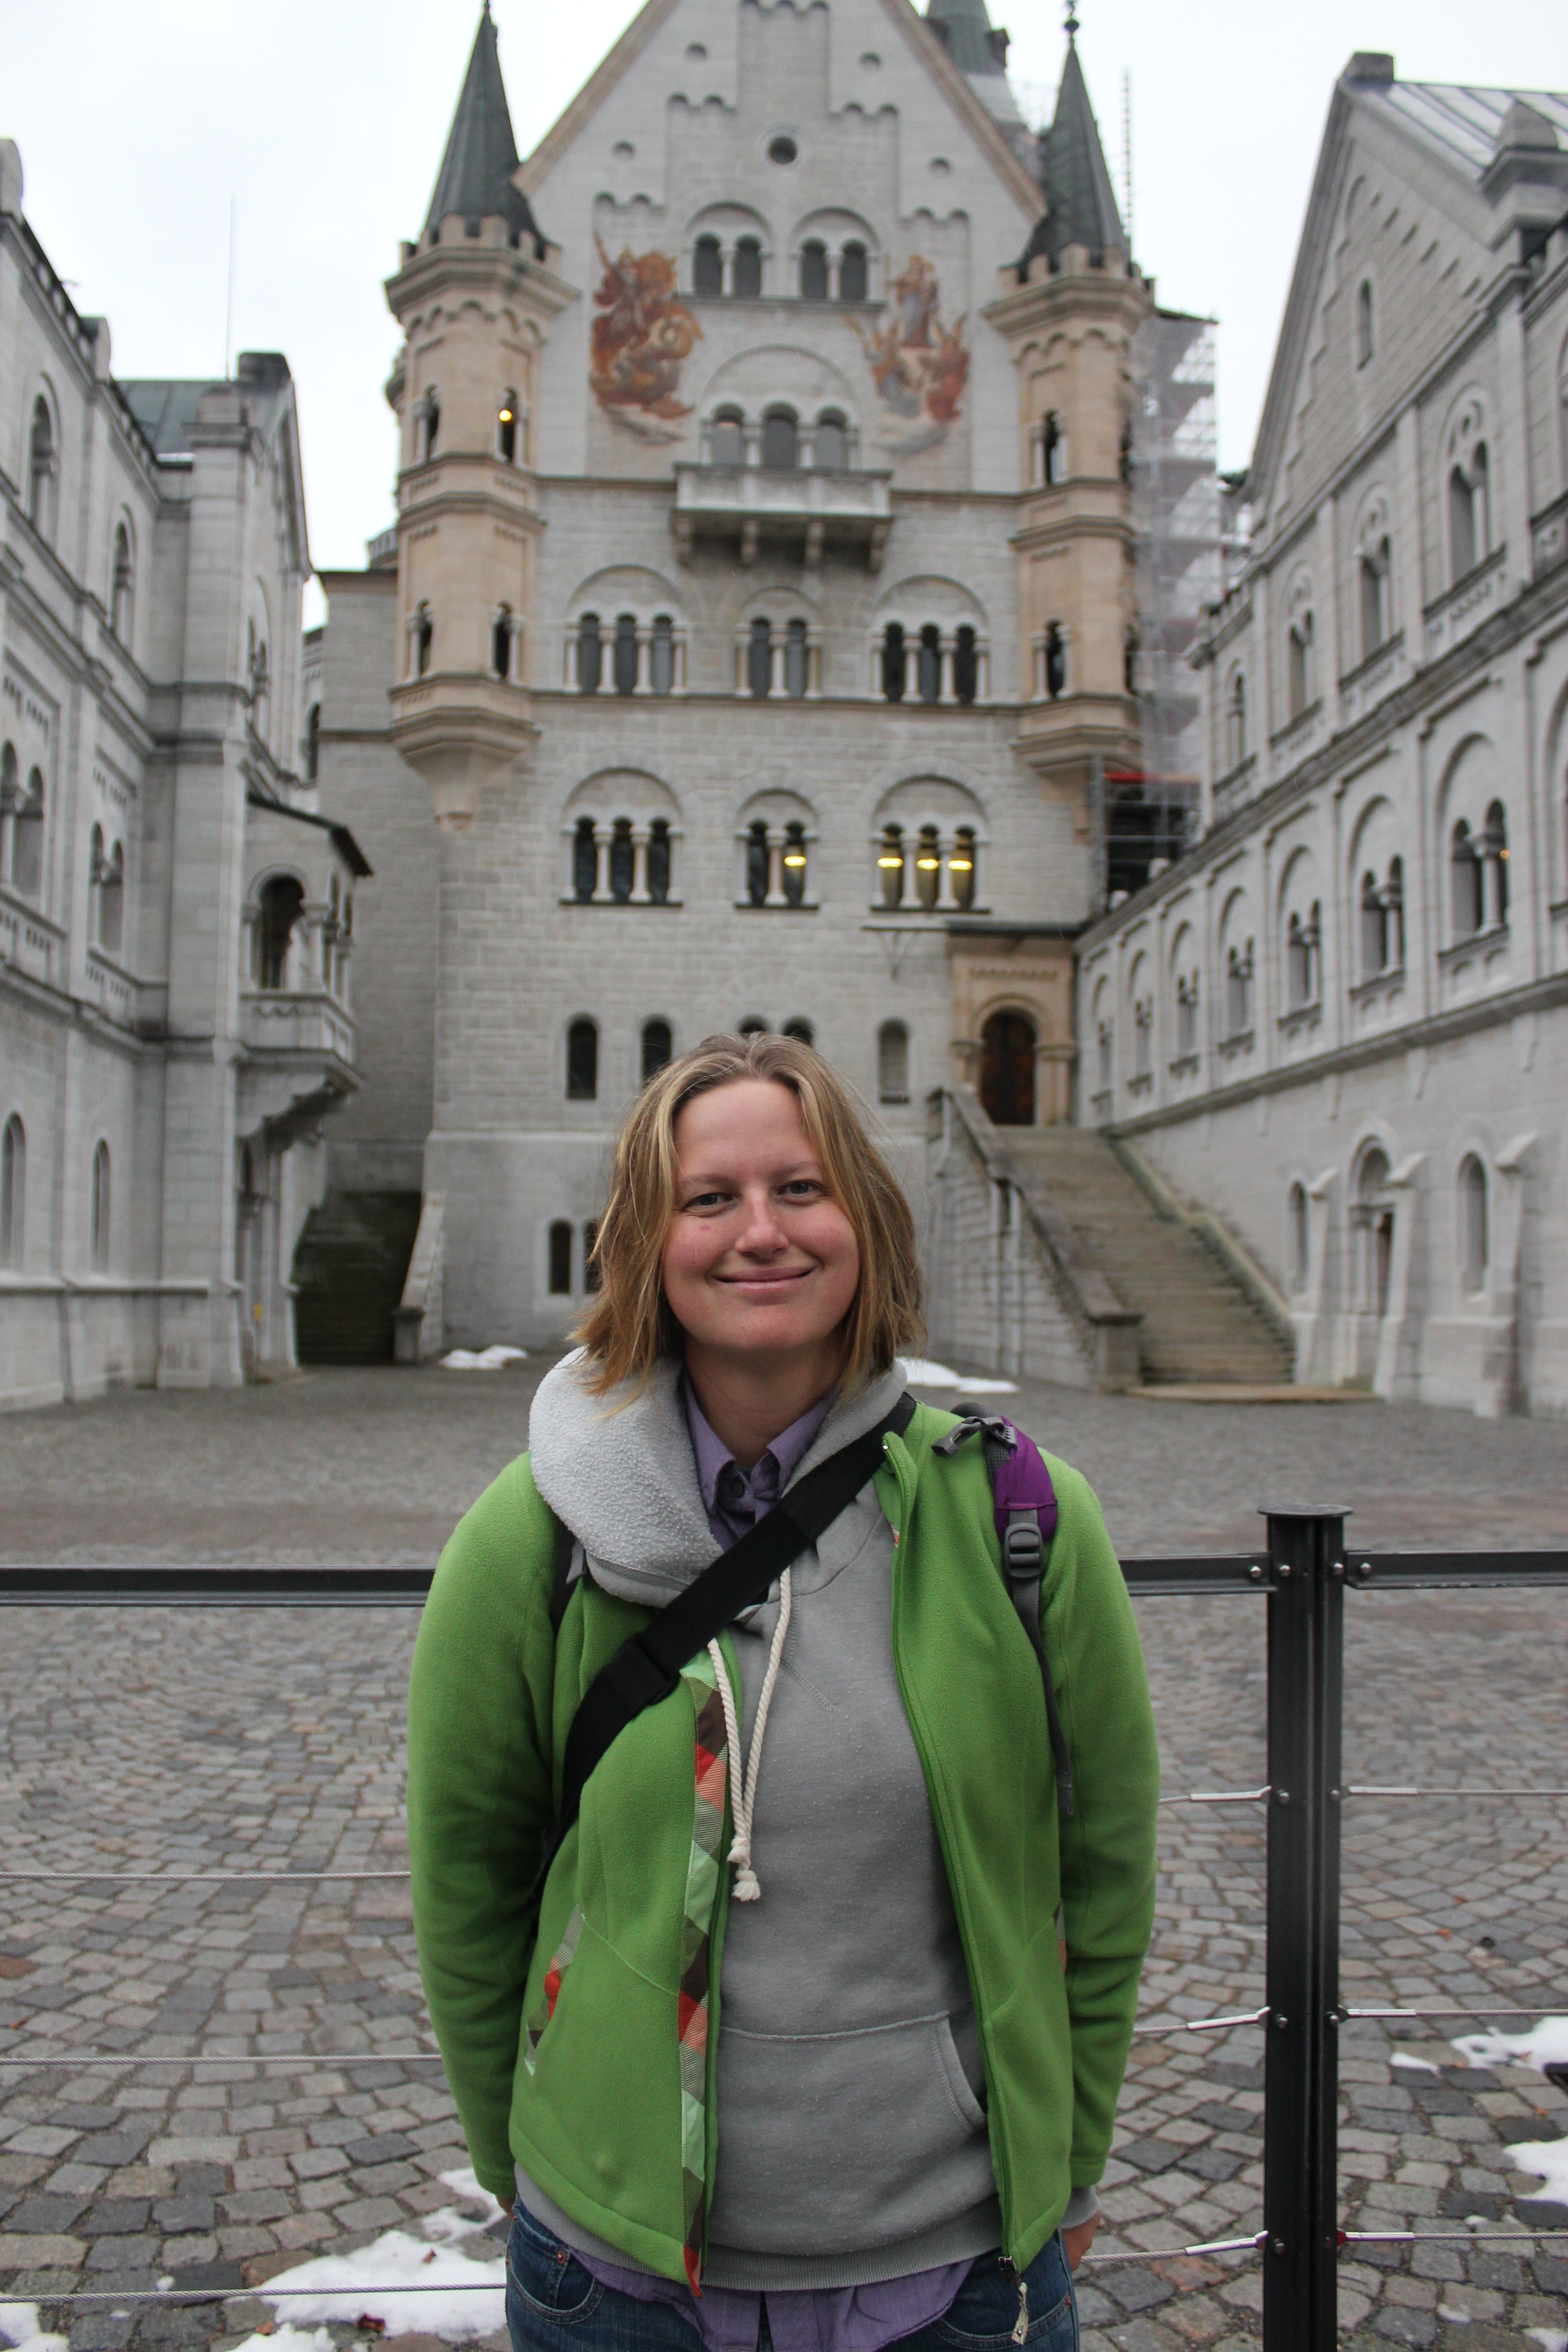 Pose at Neuschwanstein Castle; Schwangau Village, Germany; 2012